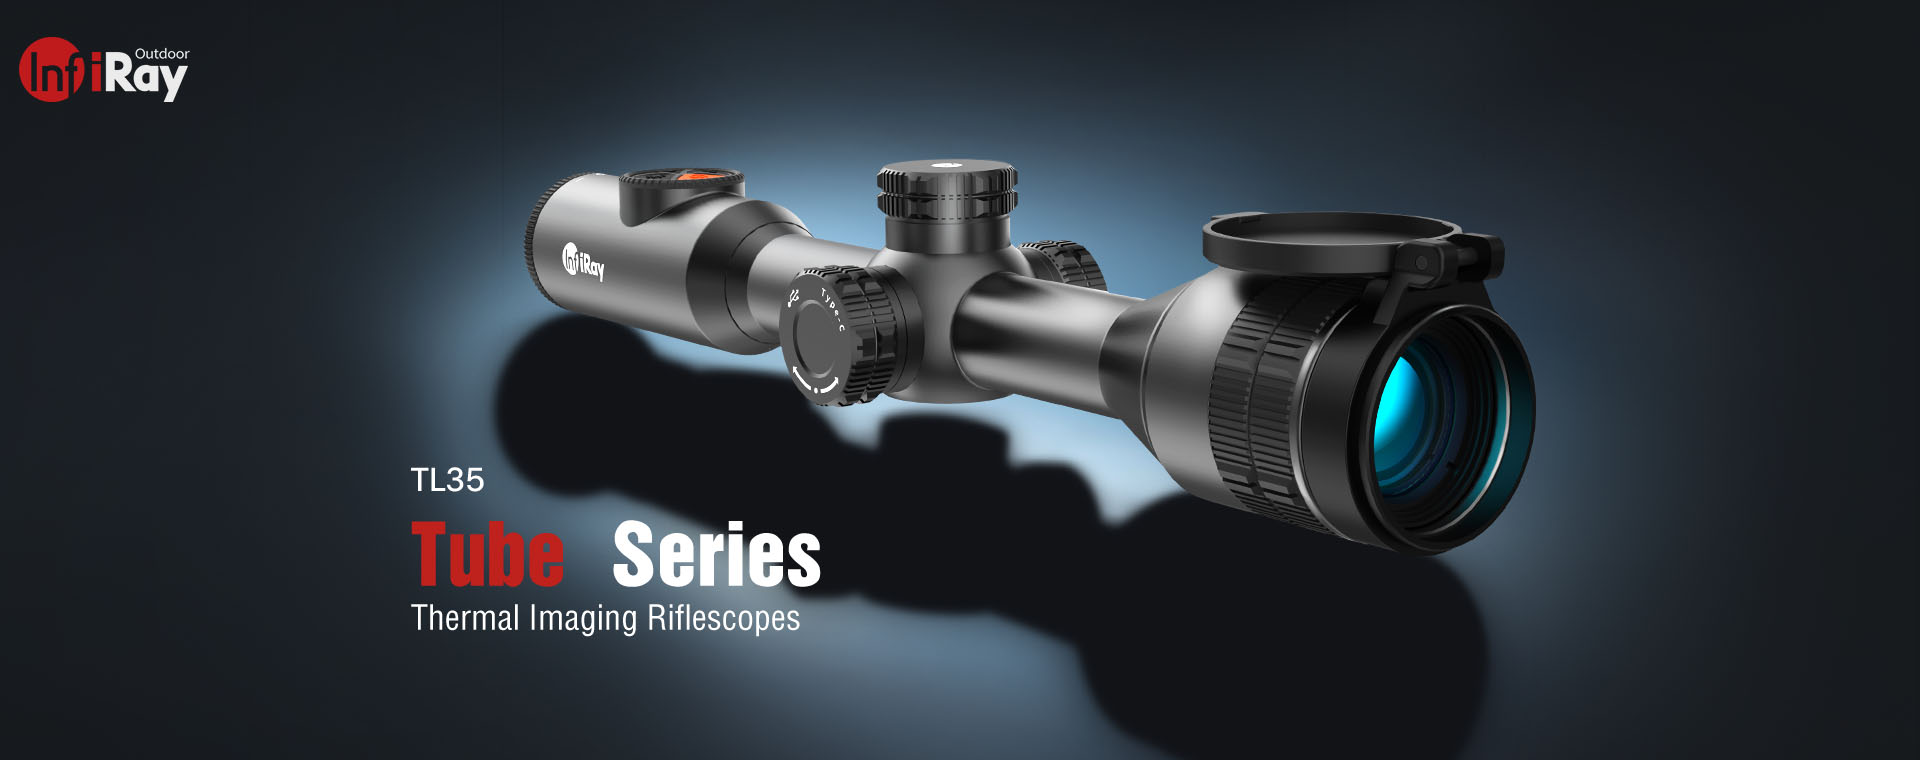 Thermal Imaging Riflescope Tube Series